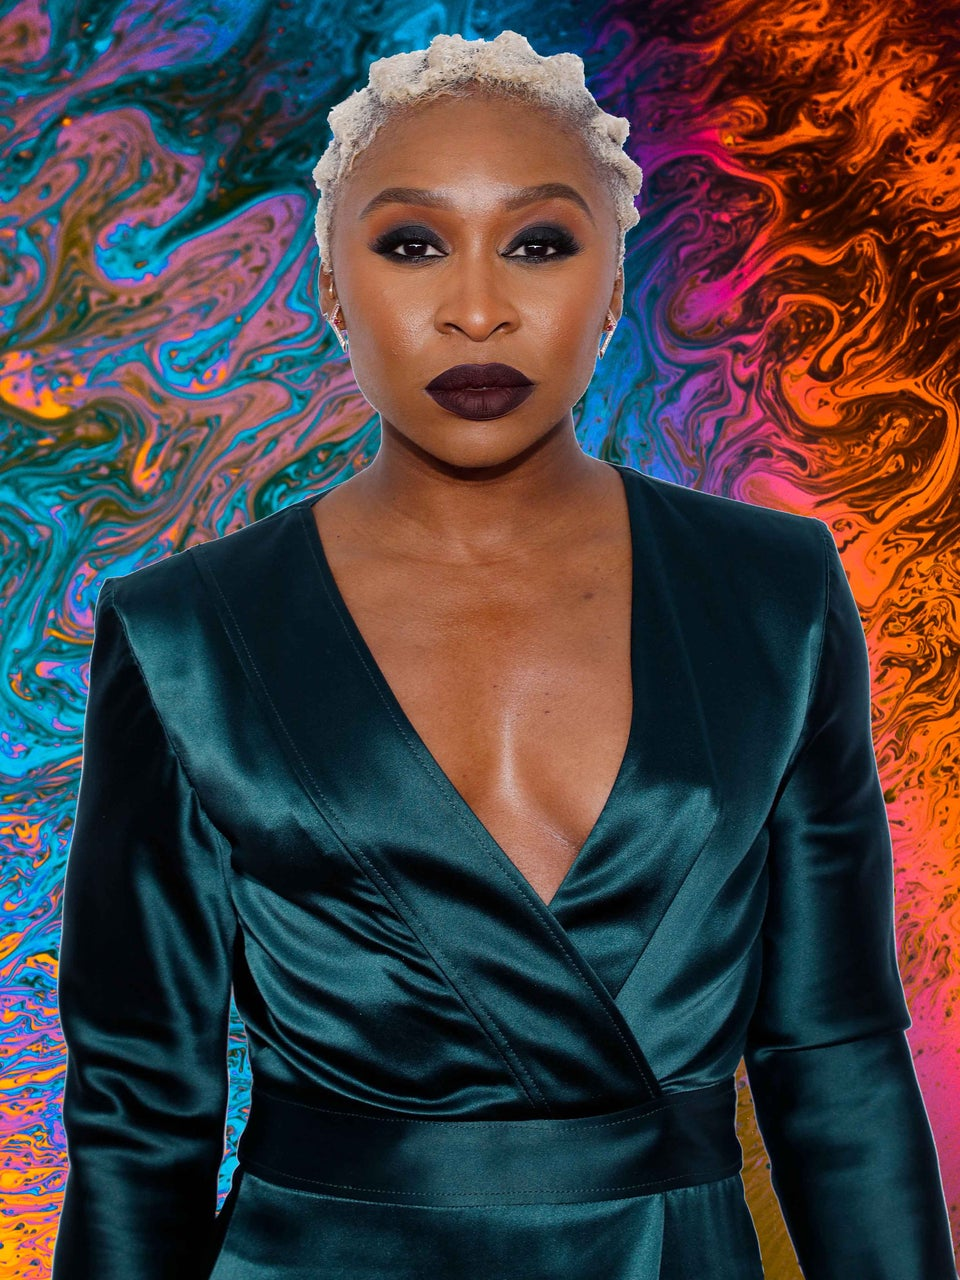 Cynthia Erivo Has A Message For Those Who Think Blonde Hair Makes Her Less 'Woke'